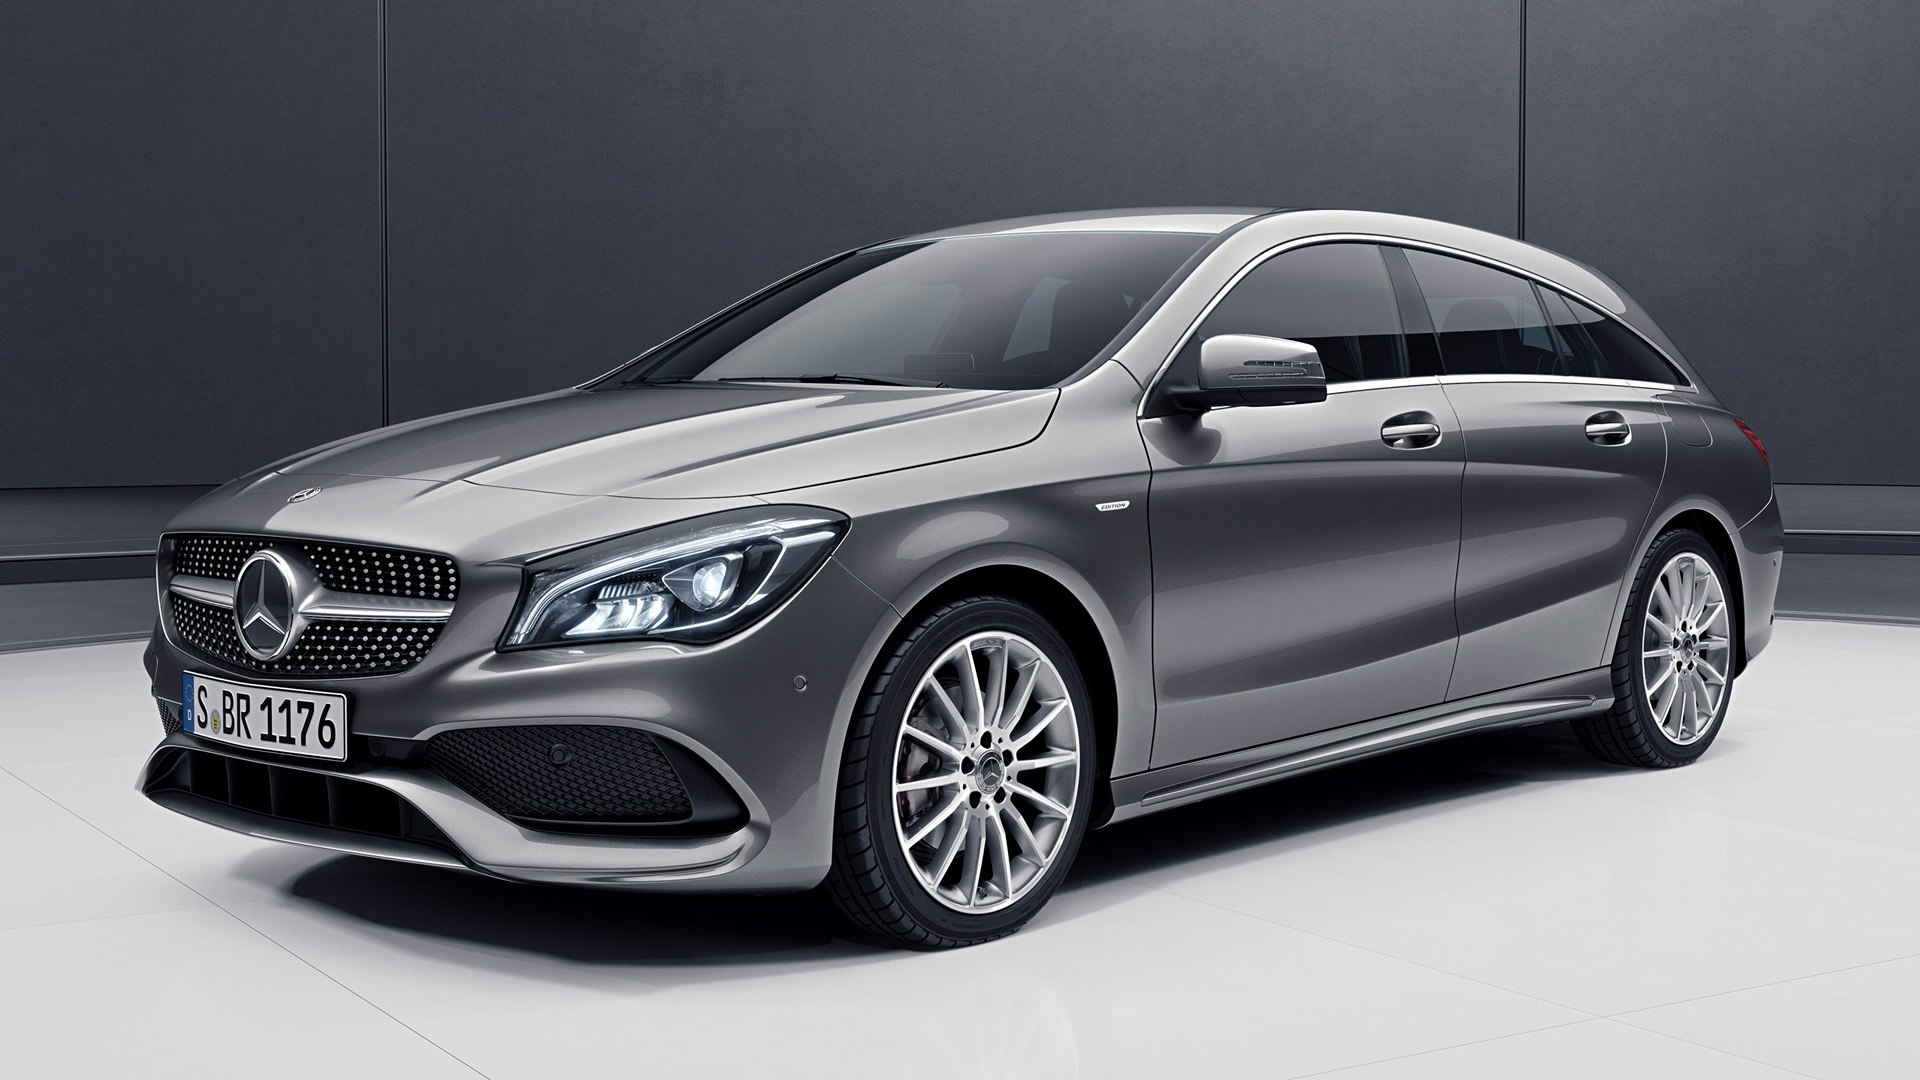 2018 Mercedes Benz Cla 250 >> Mercedes-Benz CLA-Class Shooting Brake Night Edition (2018) Wallpapers and HD Images - Car Pixel